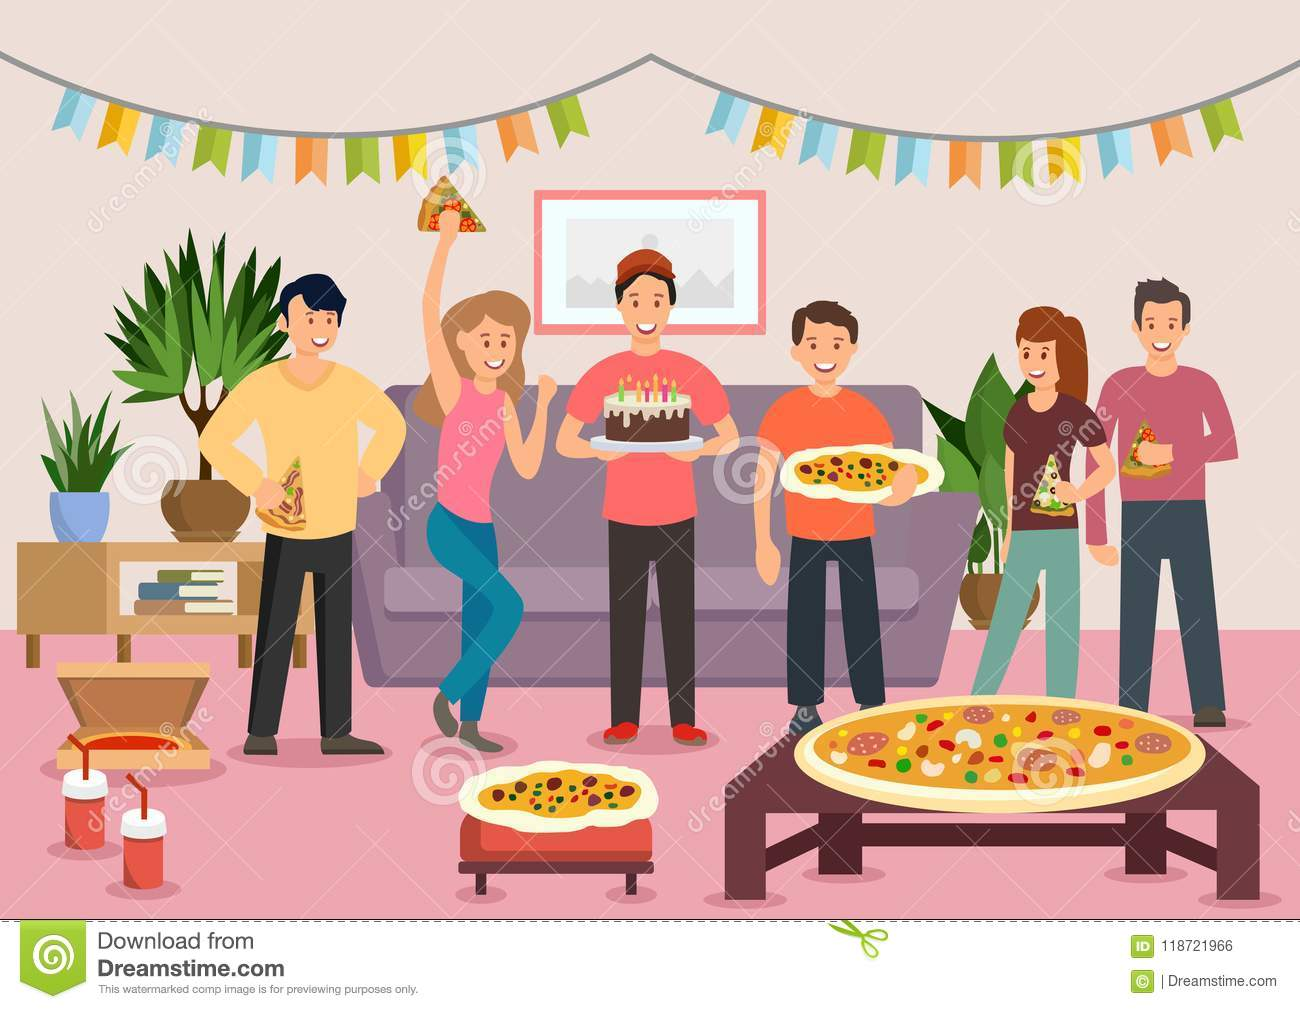 Cartoon Group Of Cheerful People Eating Pizza At Birthday Party Celebration Vector Illustration Clipart Flat Style